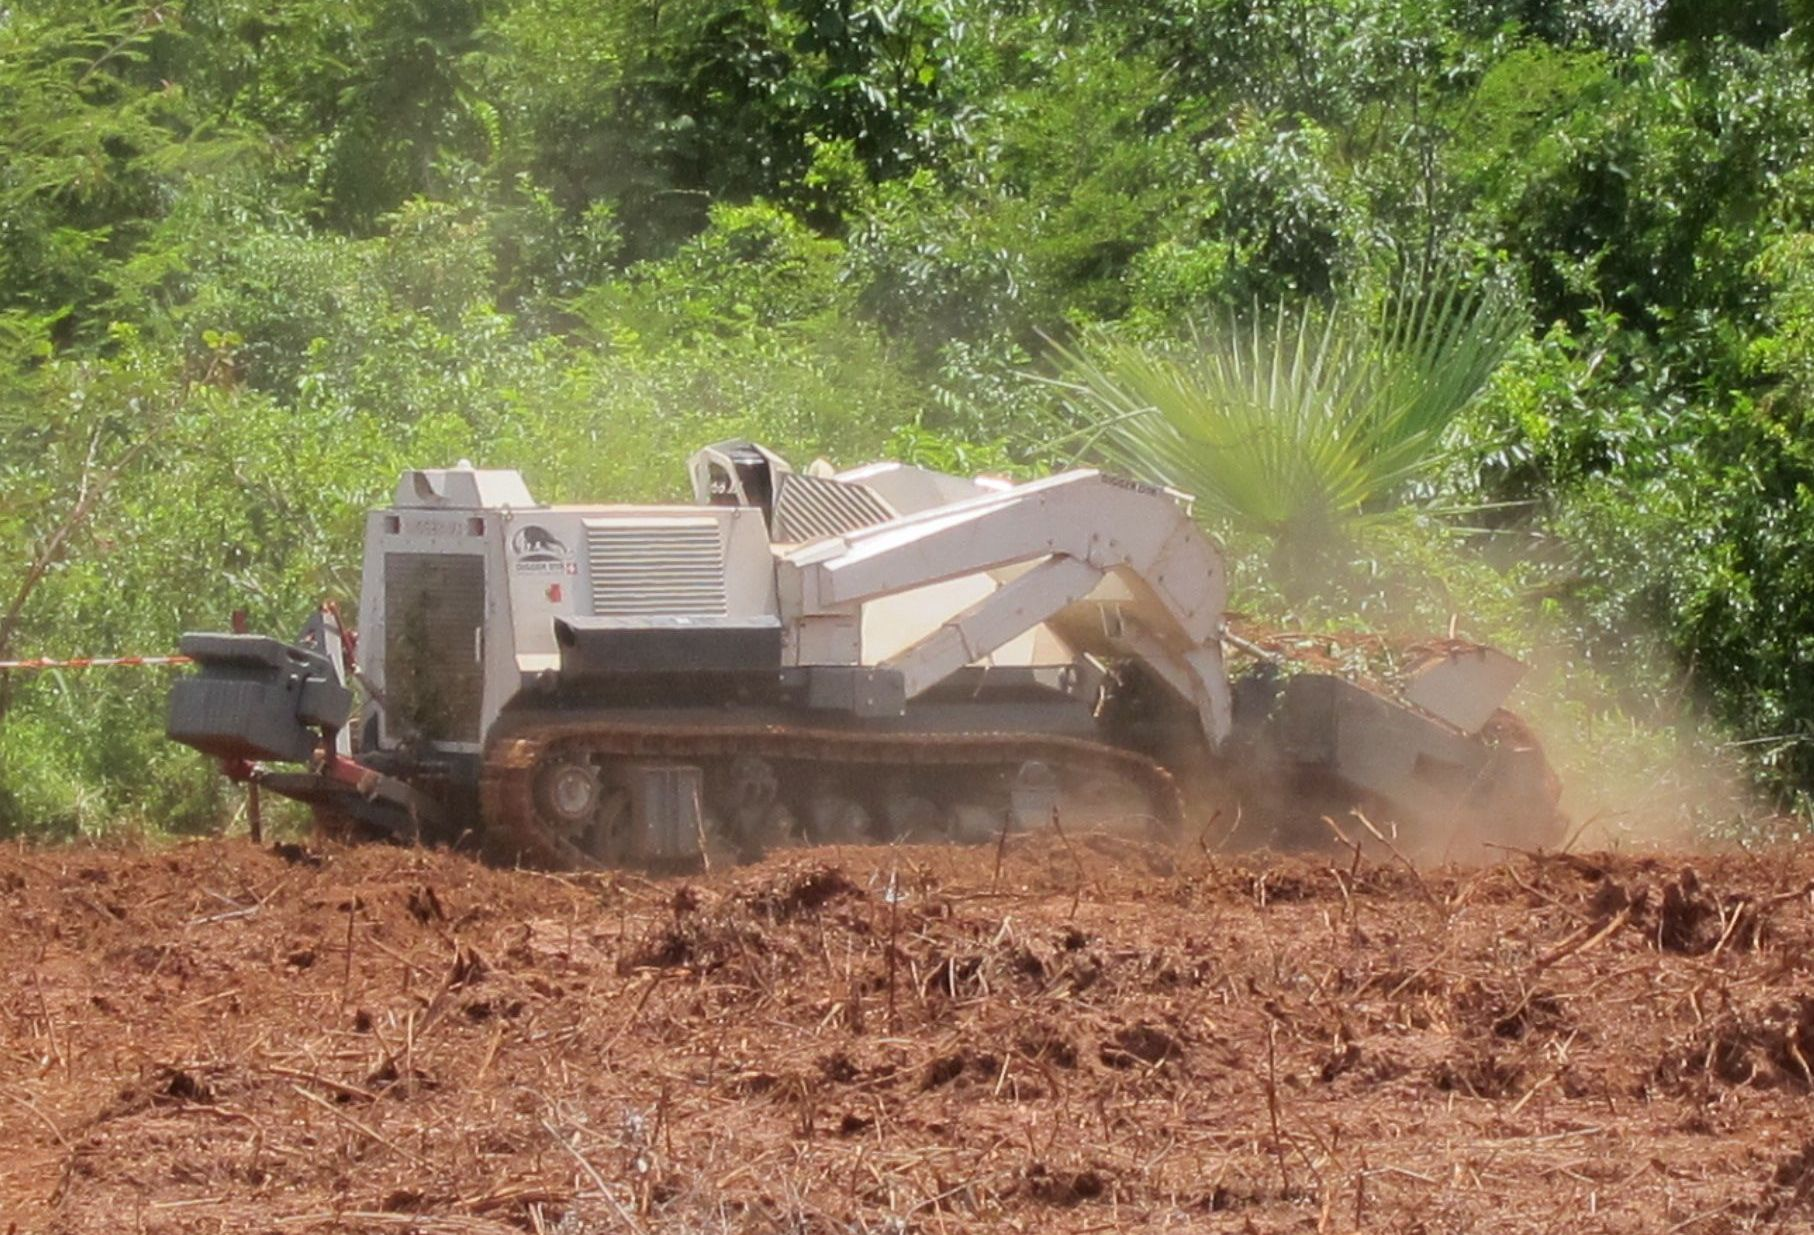 The Digger D-3 demining machine at work in Sindone, Casamance, Senegal